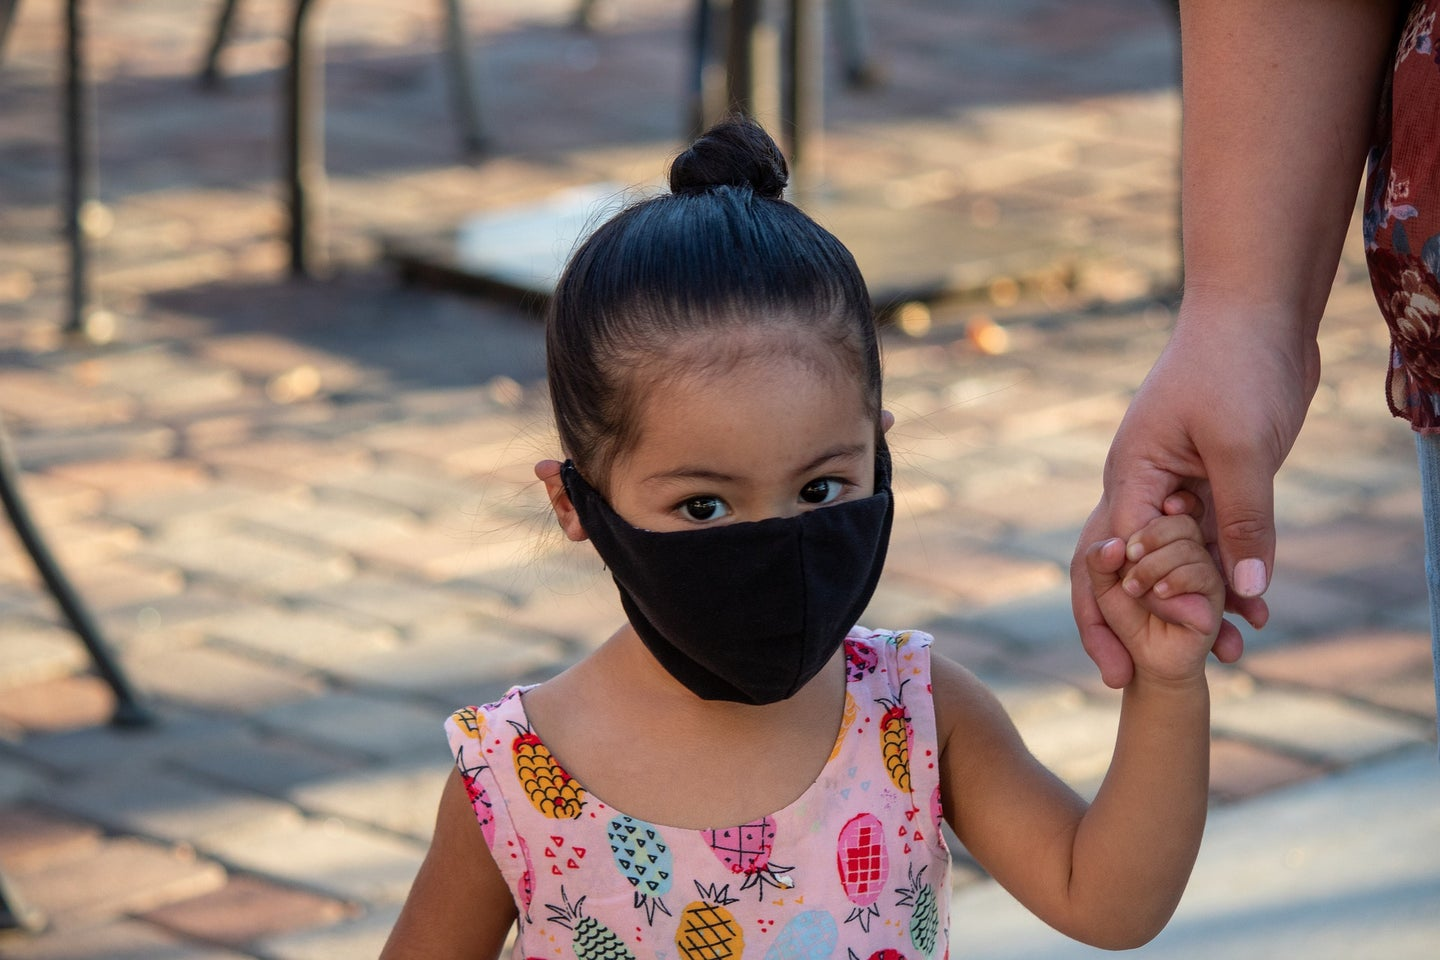 A toddler with a black mask on